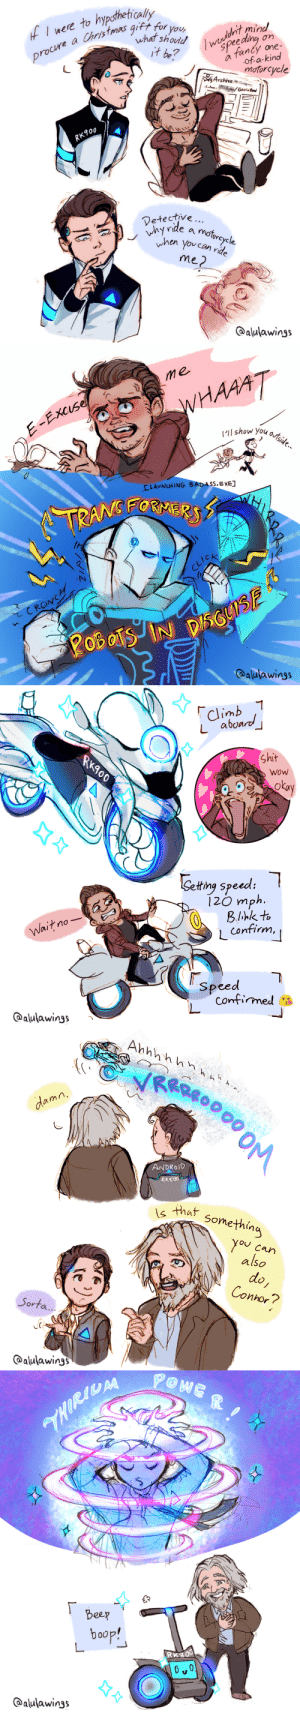 alulawings:  Special Powers! 🤖(Just realized I never posted this on my Tumblr before, hope you enjoy!): f I were to hypothetically  what should  it be?  Iwerldrt mind  peeding  procure a Christmas gift for you  fanty one-  a  of-a-kind  motorcycle  Archive  Gann Real  RK900  Detective..  why rde a motorcycle  hen you can ride  me2  @alulawings  JG   me  E-ExCIse!  WHAAAT  Ilshow you ostsid.  LAUNCHING BADASS.EXE  TRANSEORMERS  CLICK  CRONC  oBoS IN  20B oTSINDSCUIS  @alulawings   climb  Labond  Shit  RK900  WoW  okay  Setting speed:  í20 mph  Blihk to  L Confirm,  Wait no  speed  confirmed  @alulawings   Ahhhh hn h  R000 OM  damn  ANDROID  RKGOO  that something  you can  also  do,  Connor?  Sorta...  @aulawings   THORILAA  Beep  baop!  RKS00  0 0  @alulawings alulawings:  Special Powers! 🤖(Just realized I never posted this on my Tumblr before, hope you enjoy!)